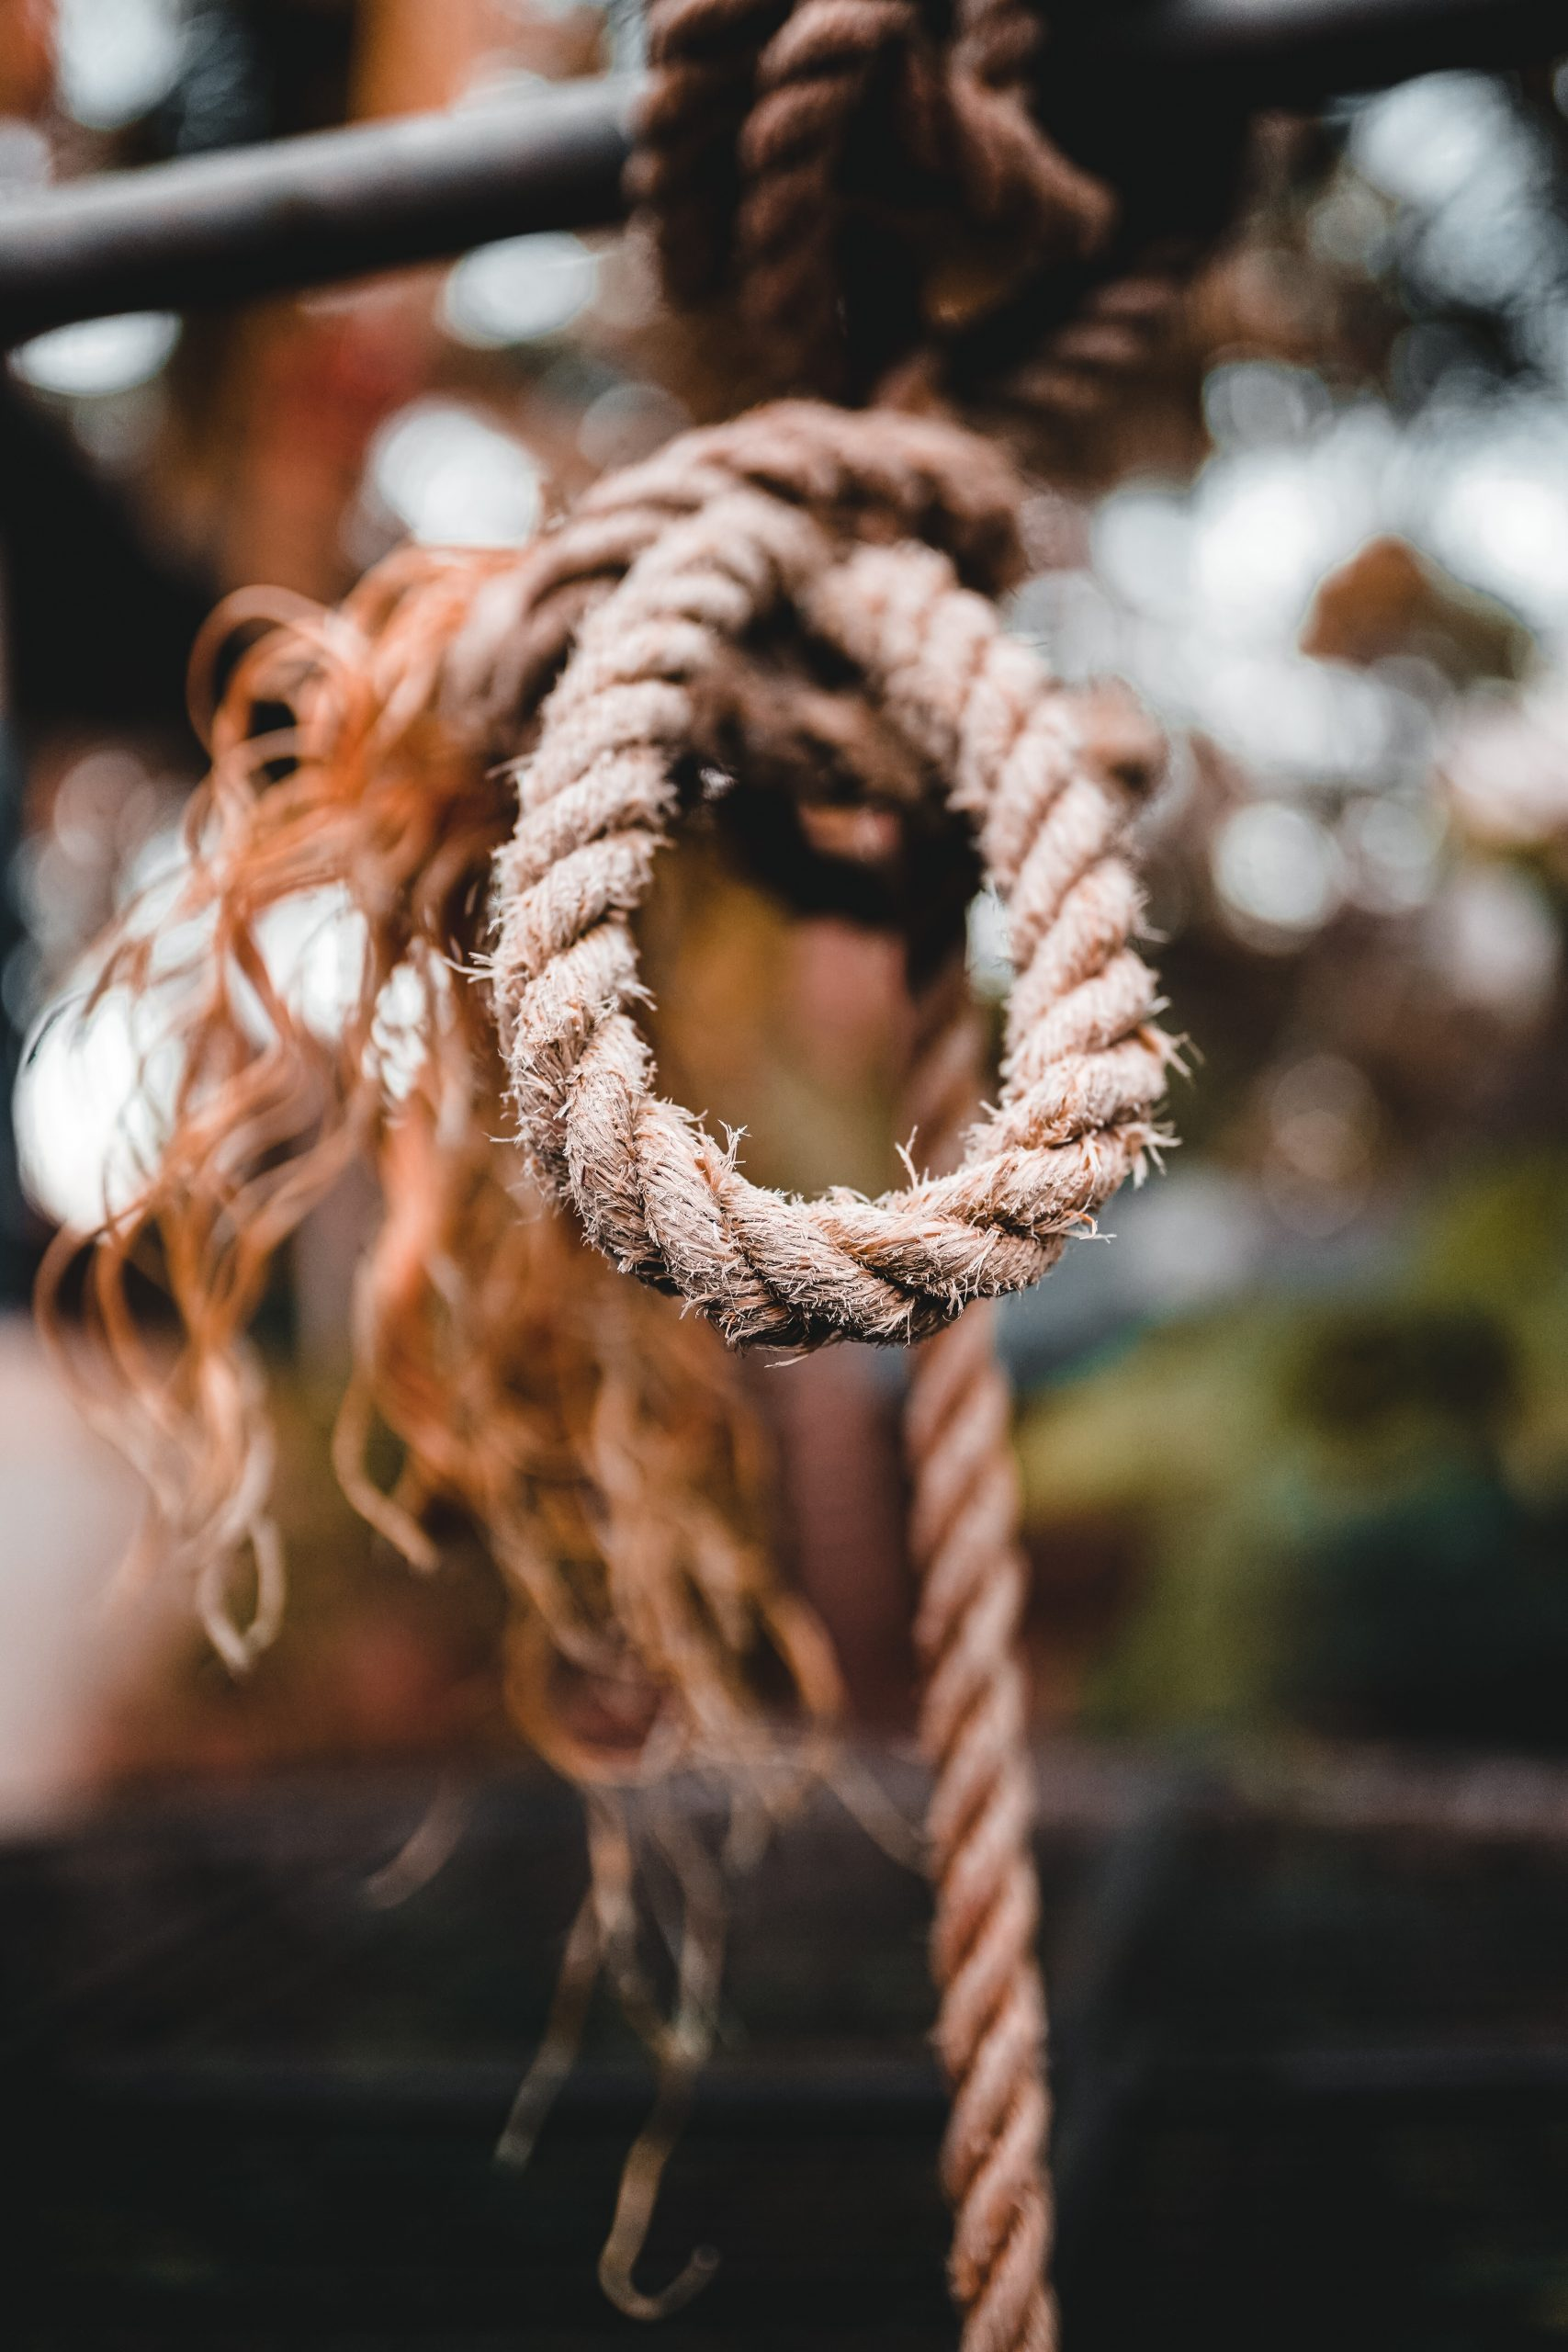 A frayed rope